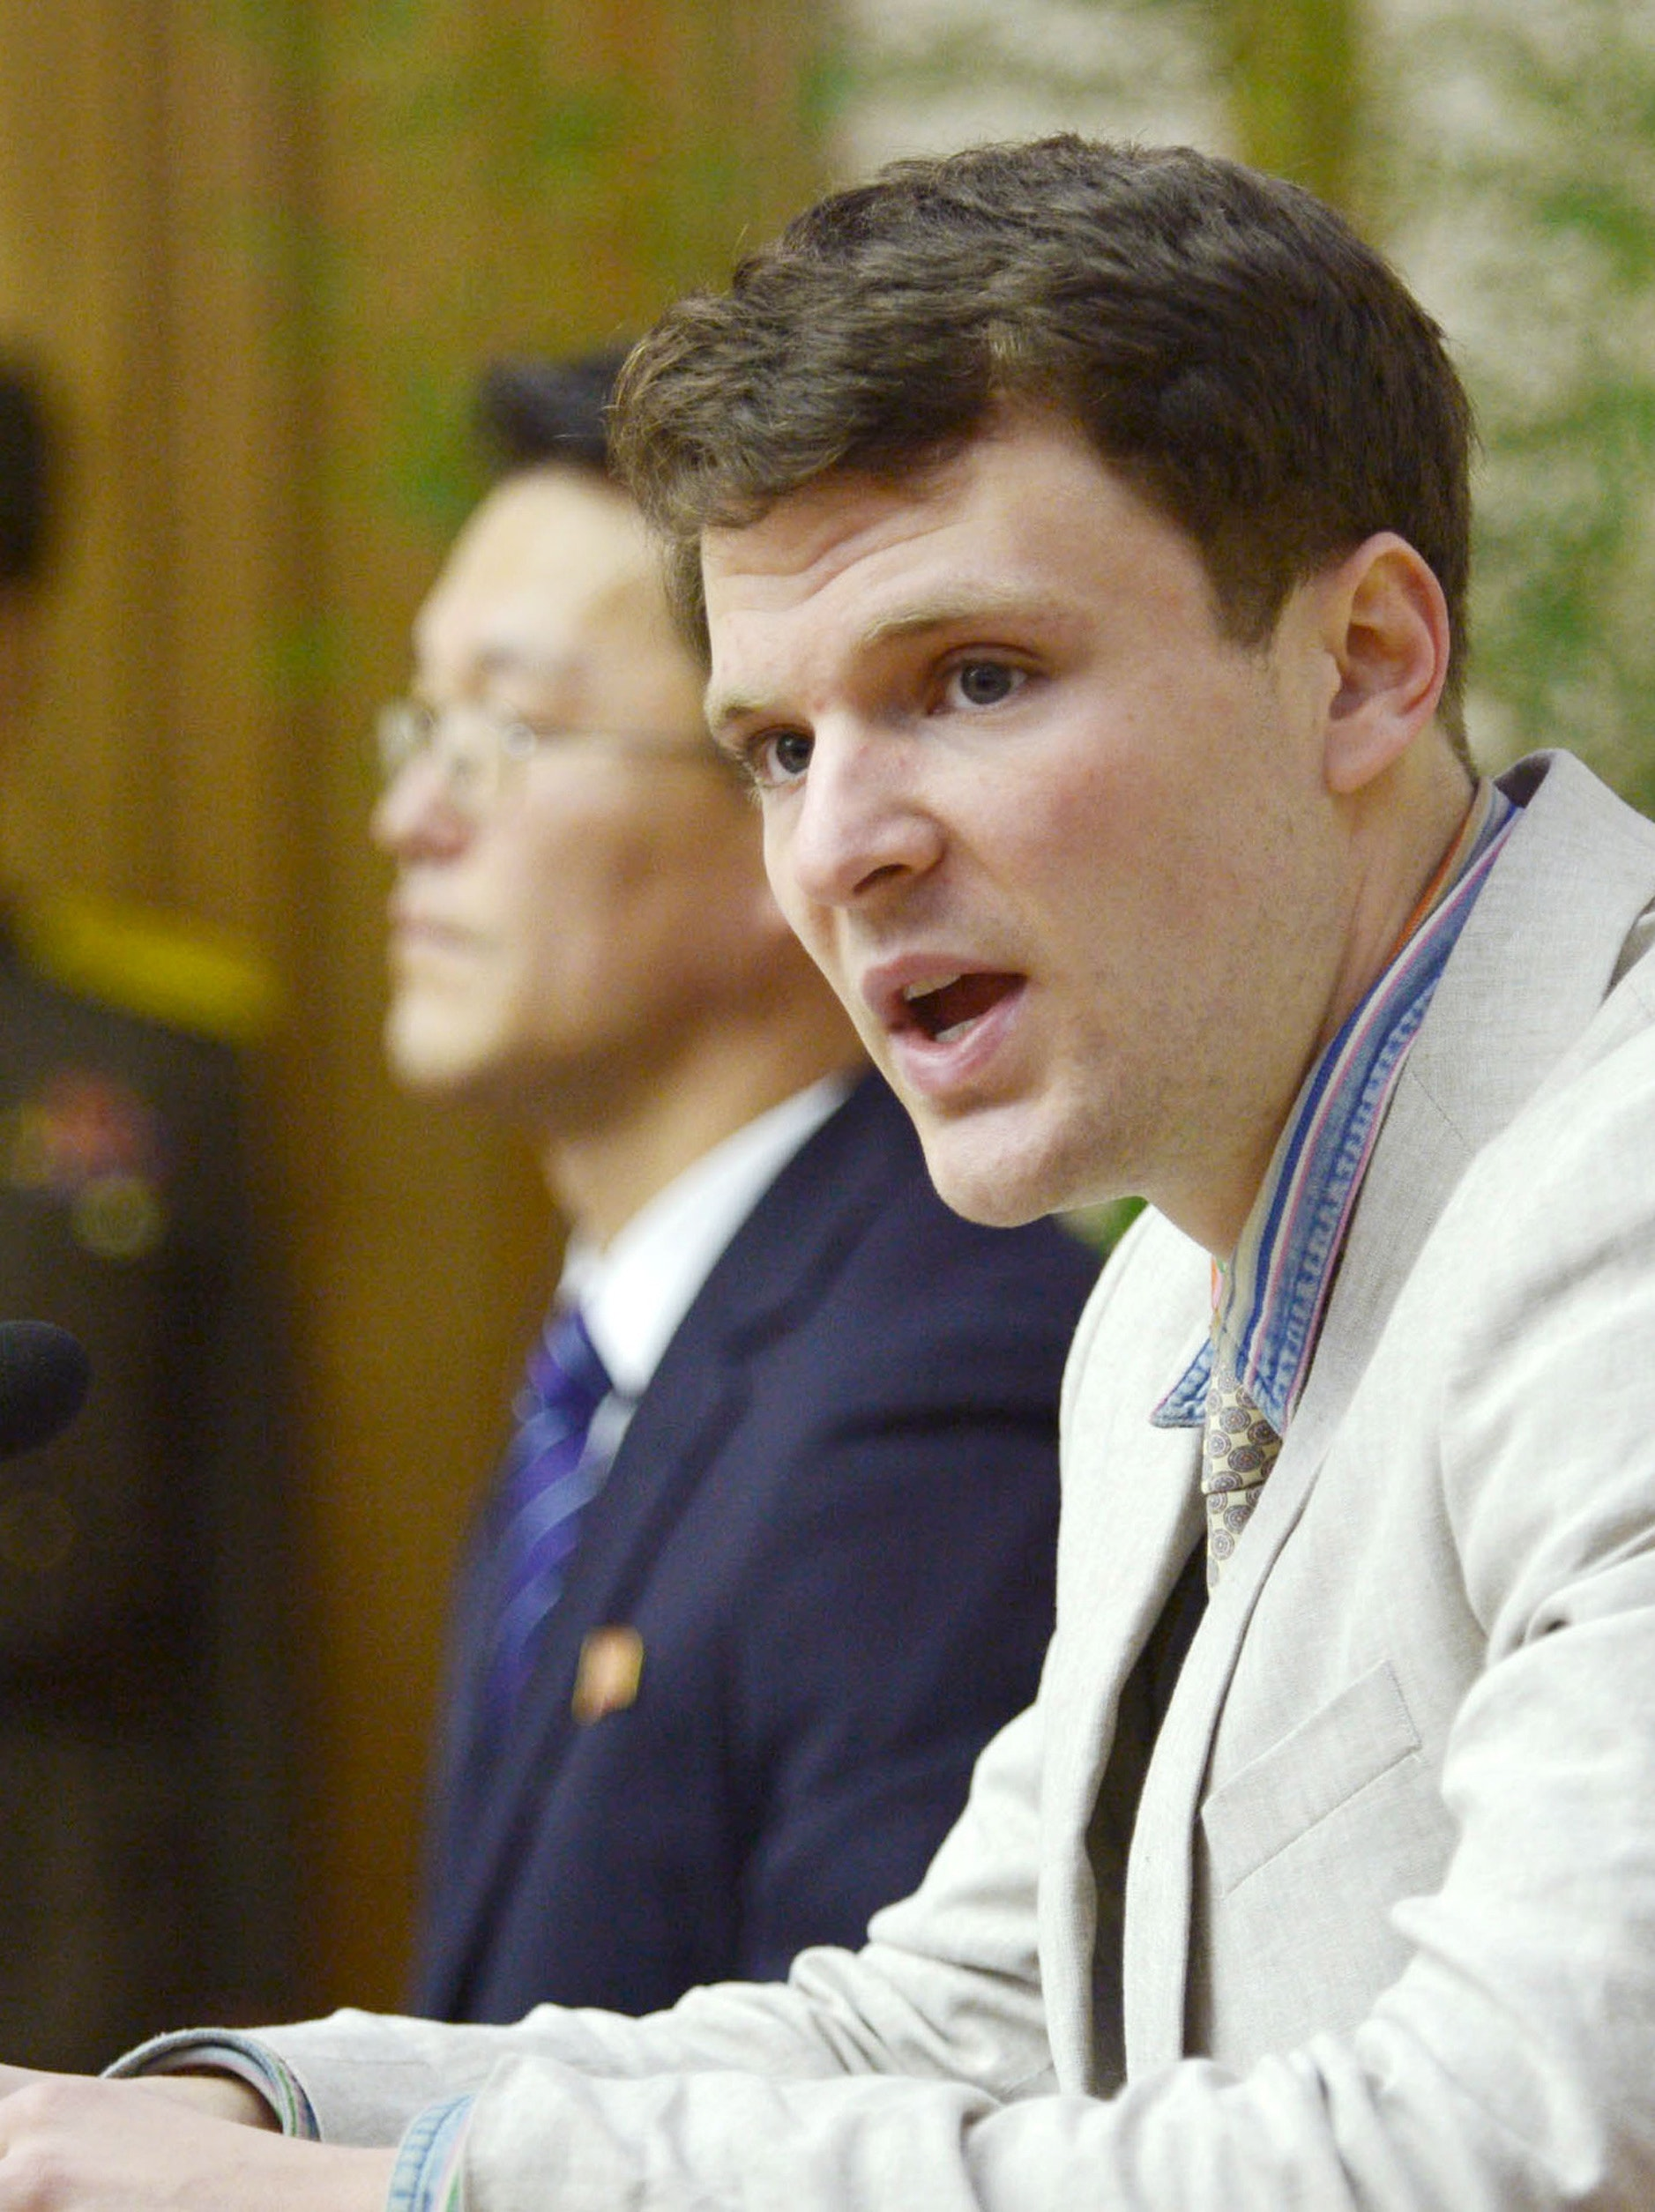 Otto Warmbier was sentenced to 15 years of hard labor in North Korea.